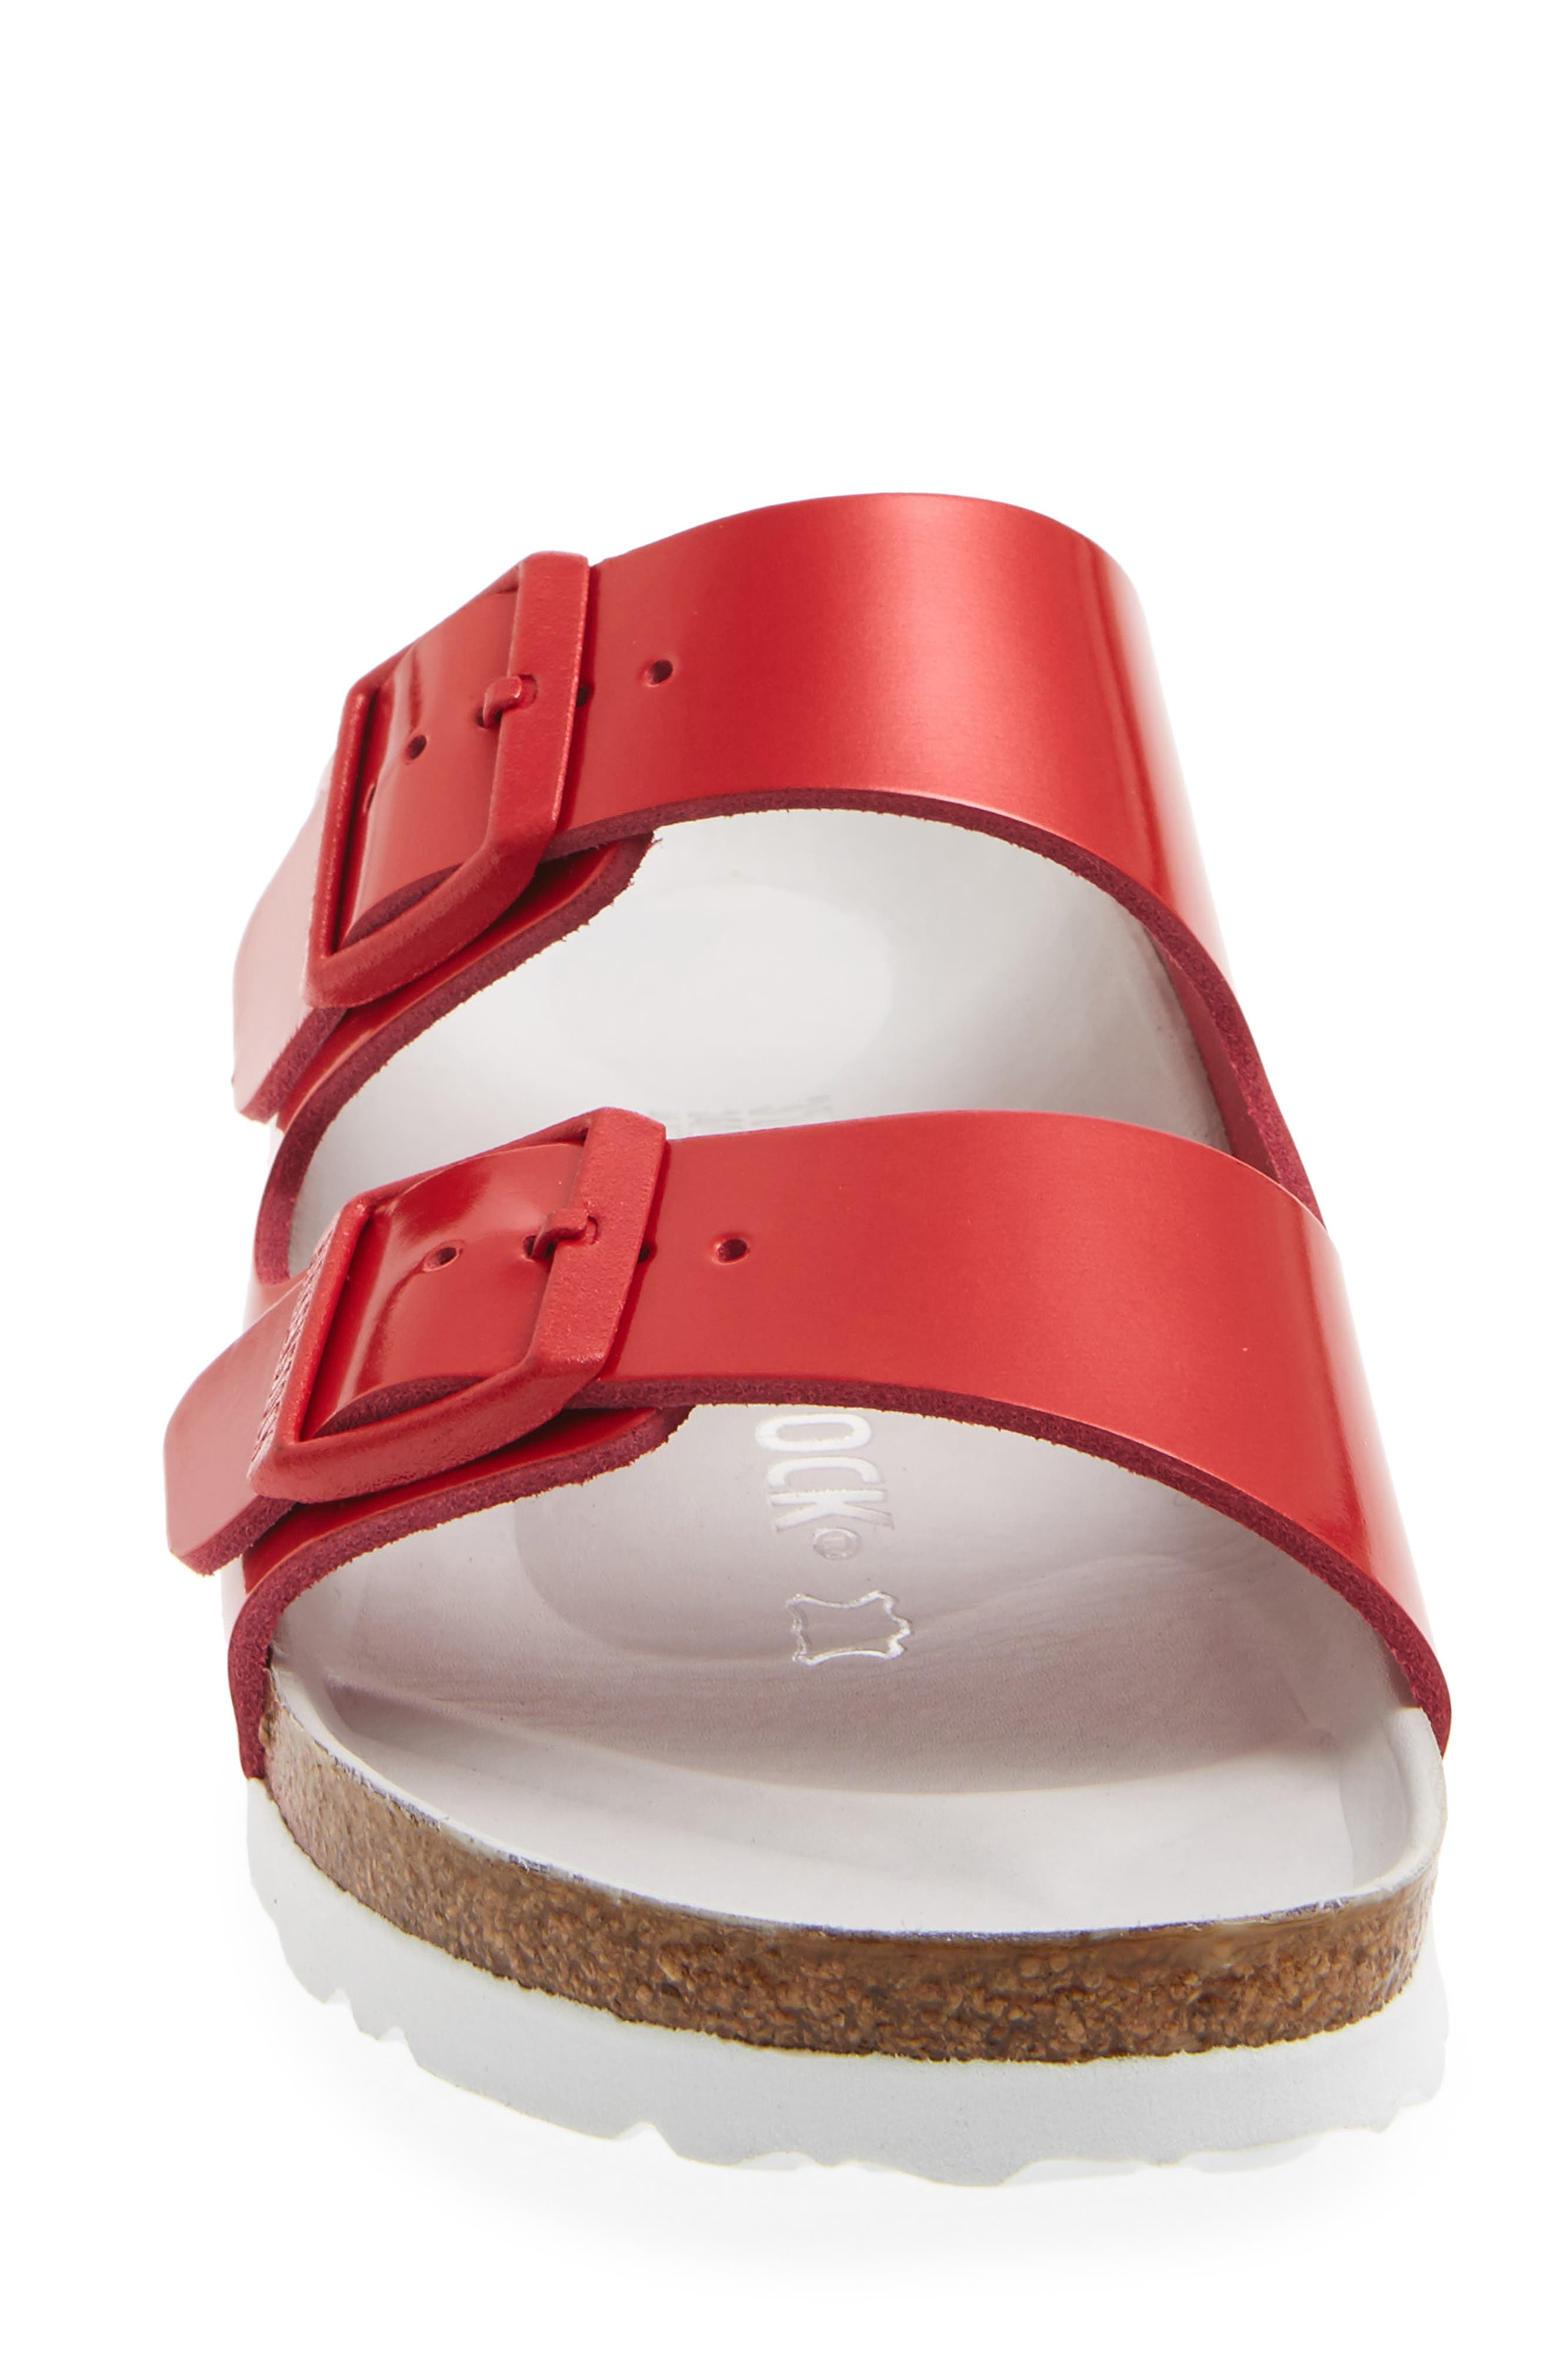 Arizona Hex Limited Edition - Shock Drop Slide Sandal,                             Alternate thumbnail 4, color,                             Red Spectacular Leather